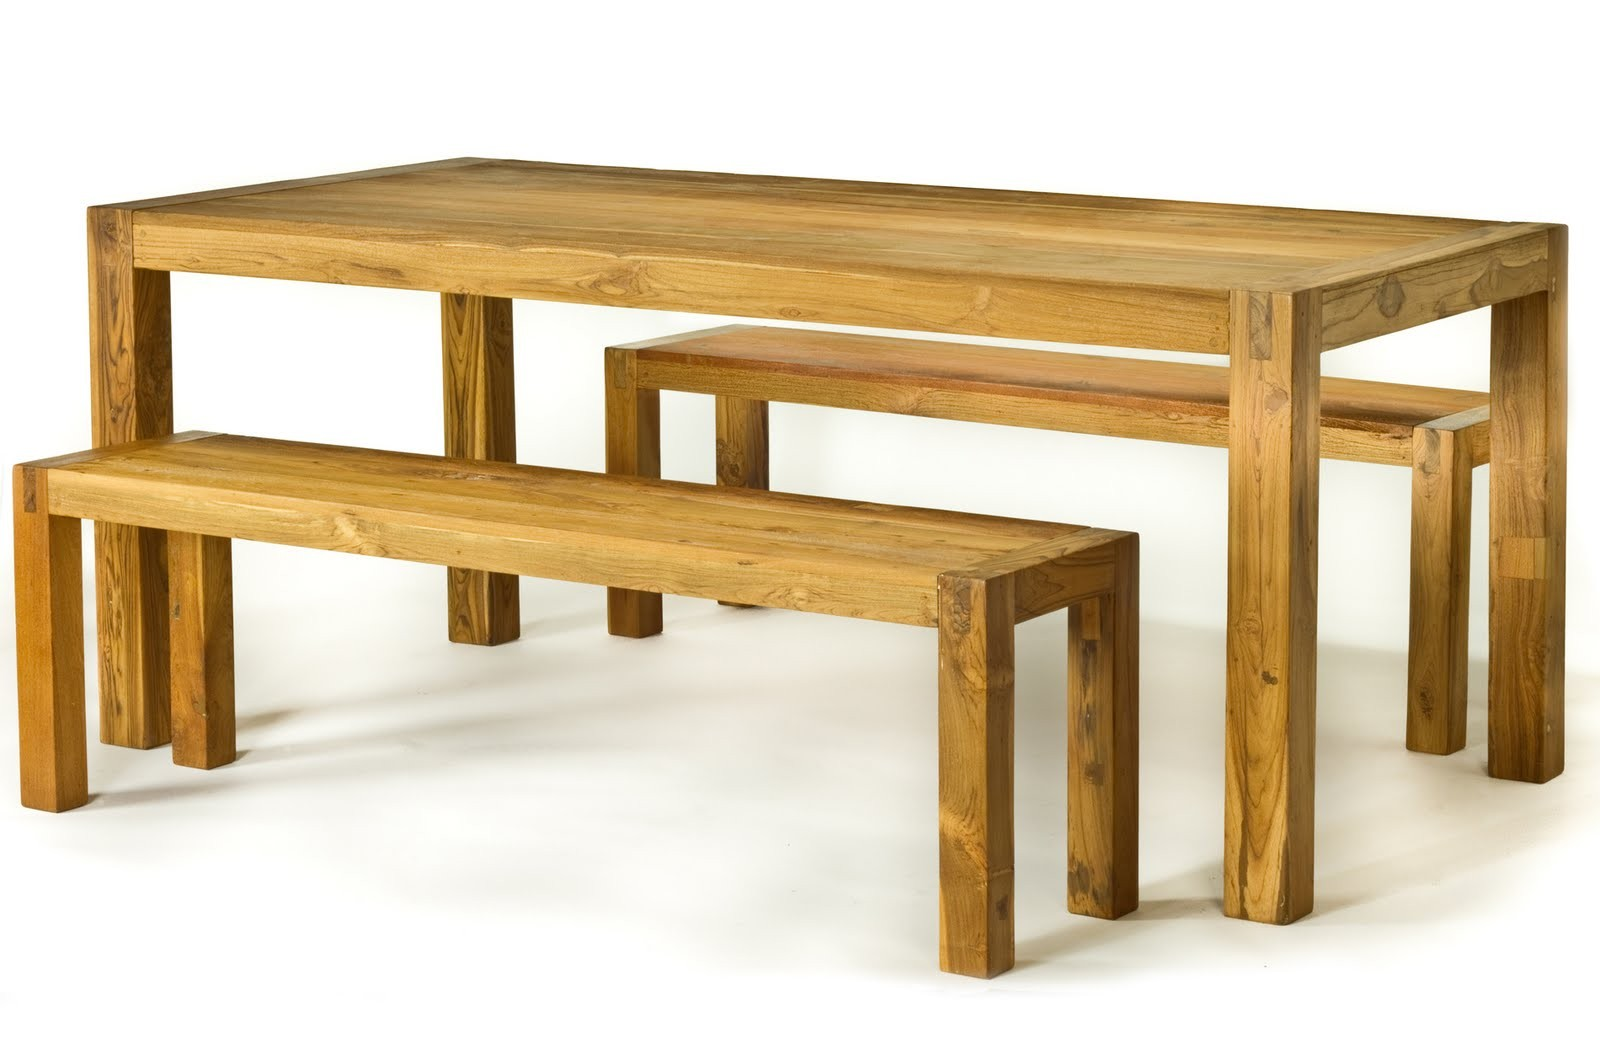 Spark 39 S Reclaimed Teak Wood Dining Table And Benches Set Is The